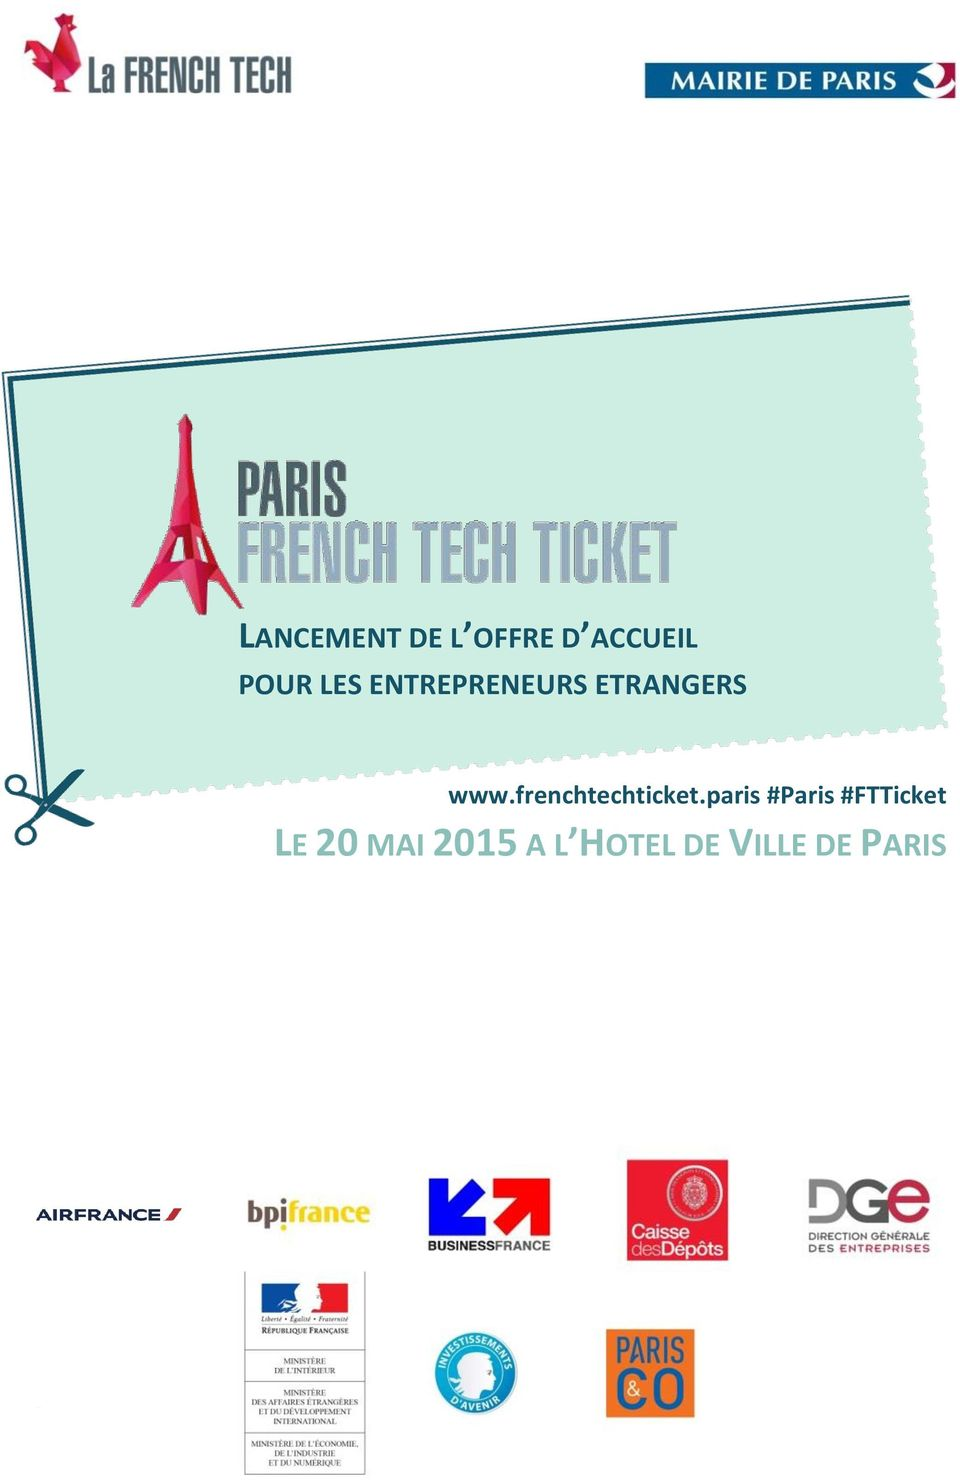 frenchtechticket.